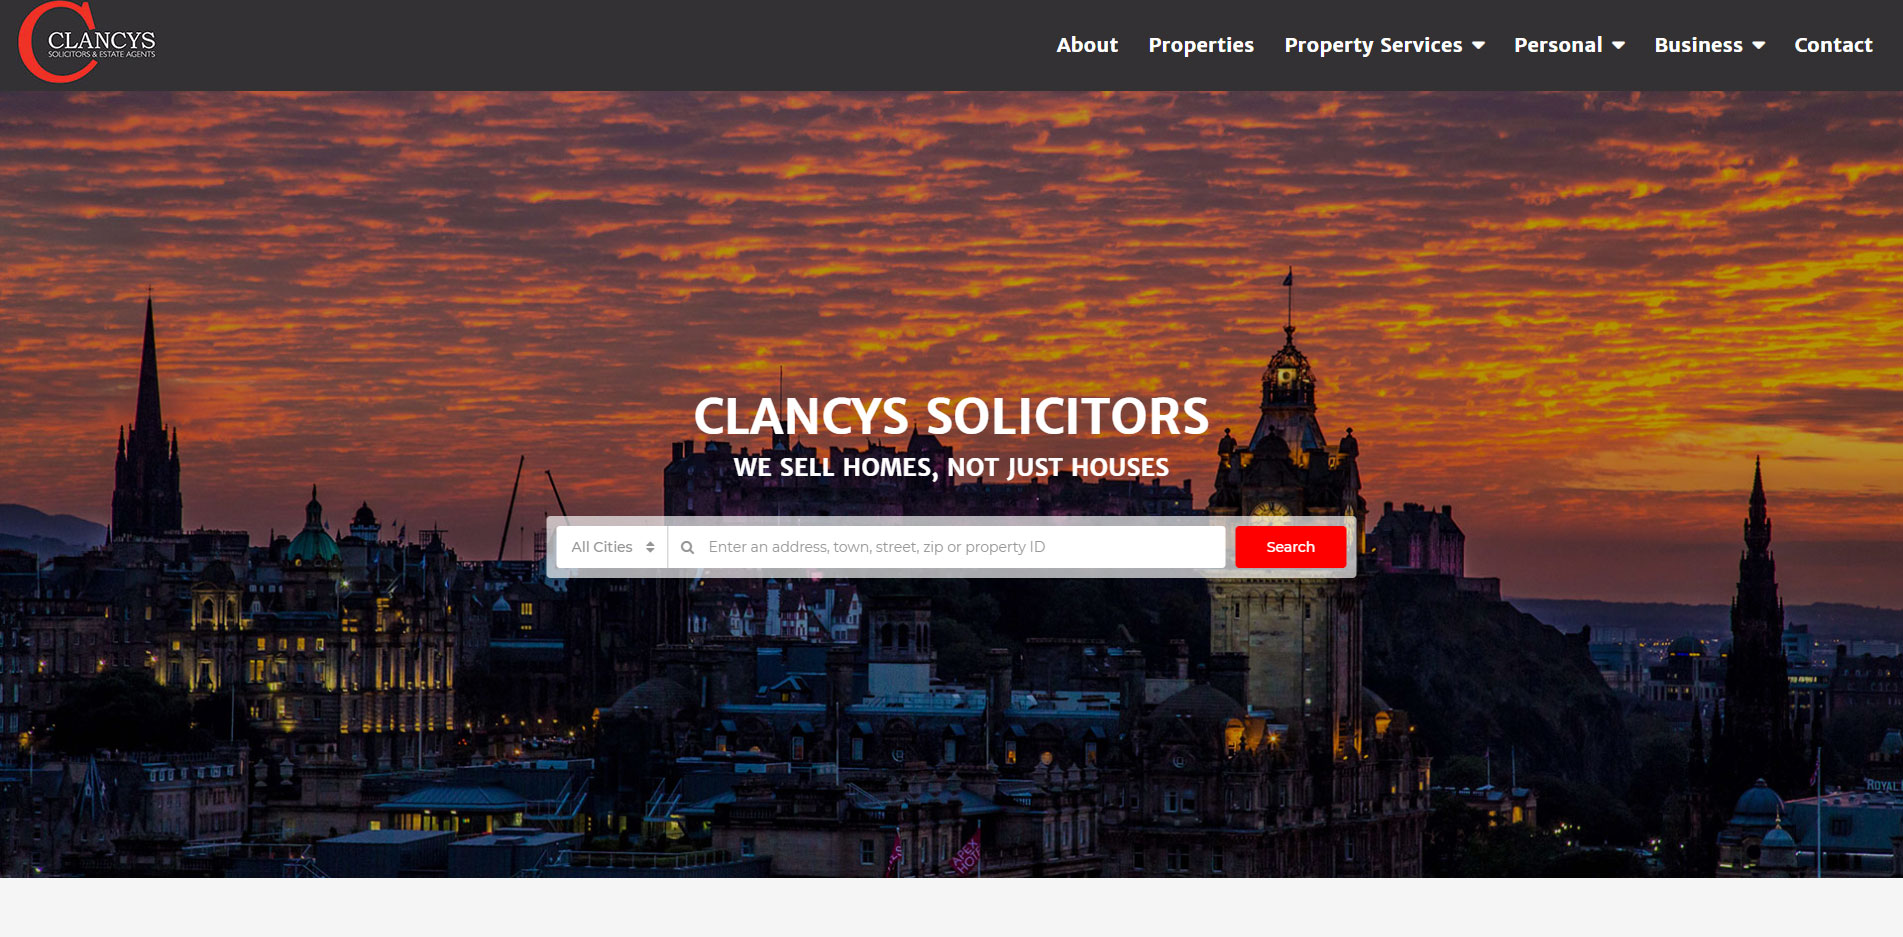 Clancys Solicitors Homepage 2018